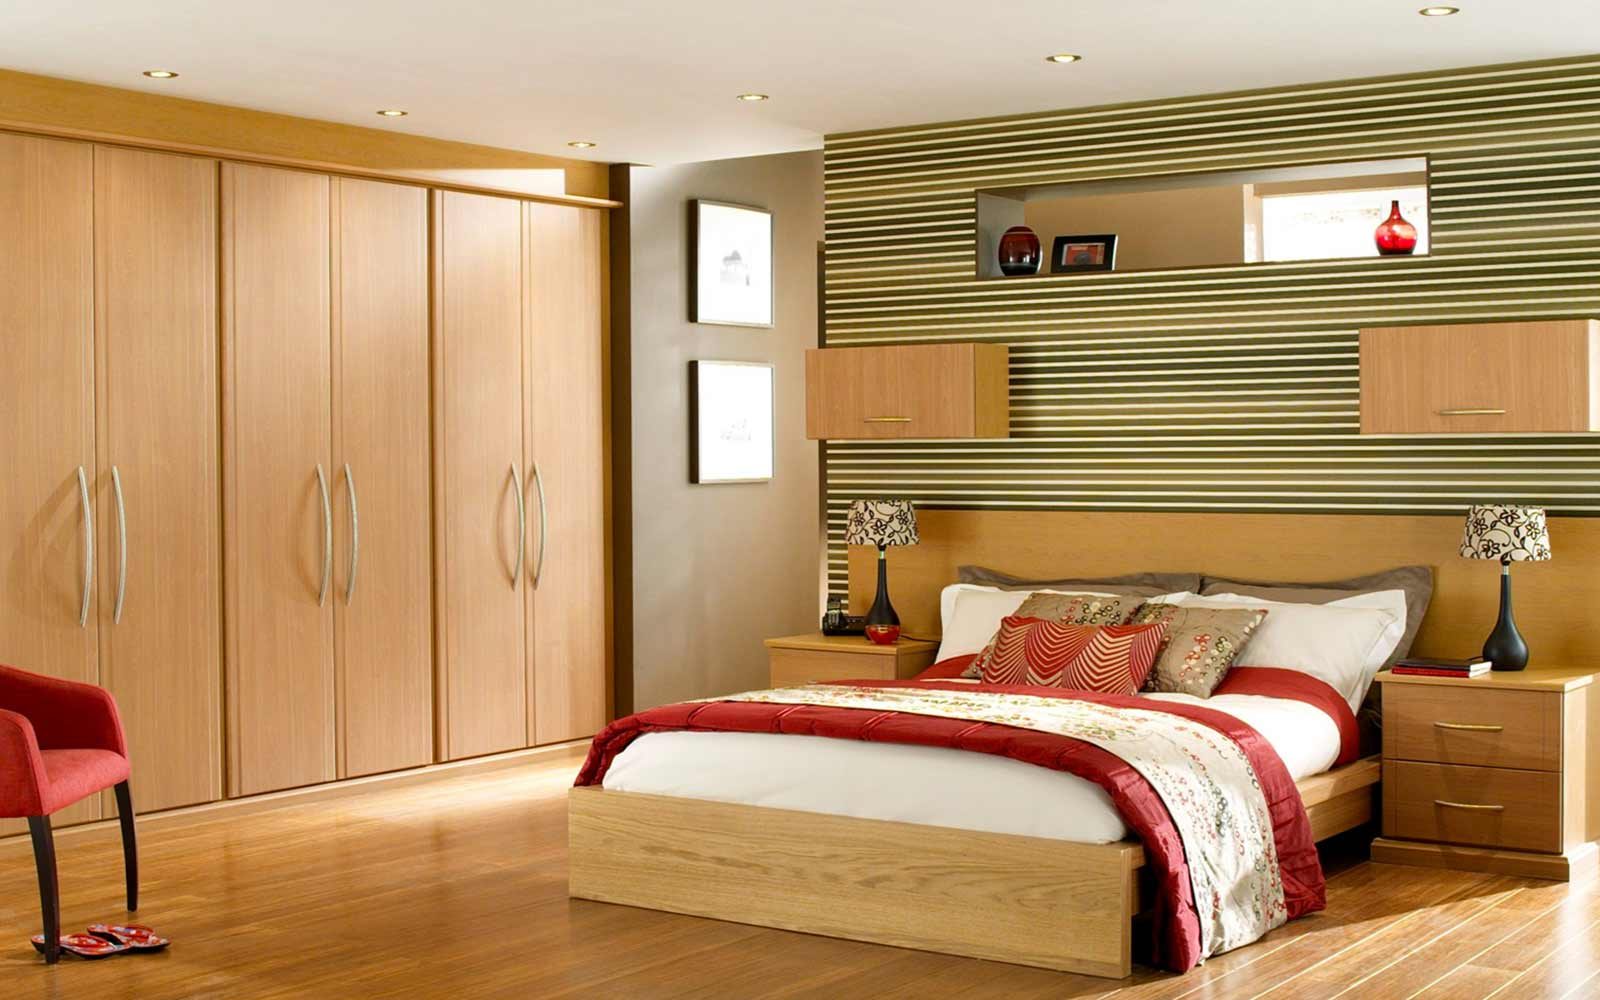 35 images of wardrobe designs for bedrooms for Bedroom designs photos